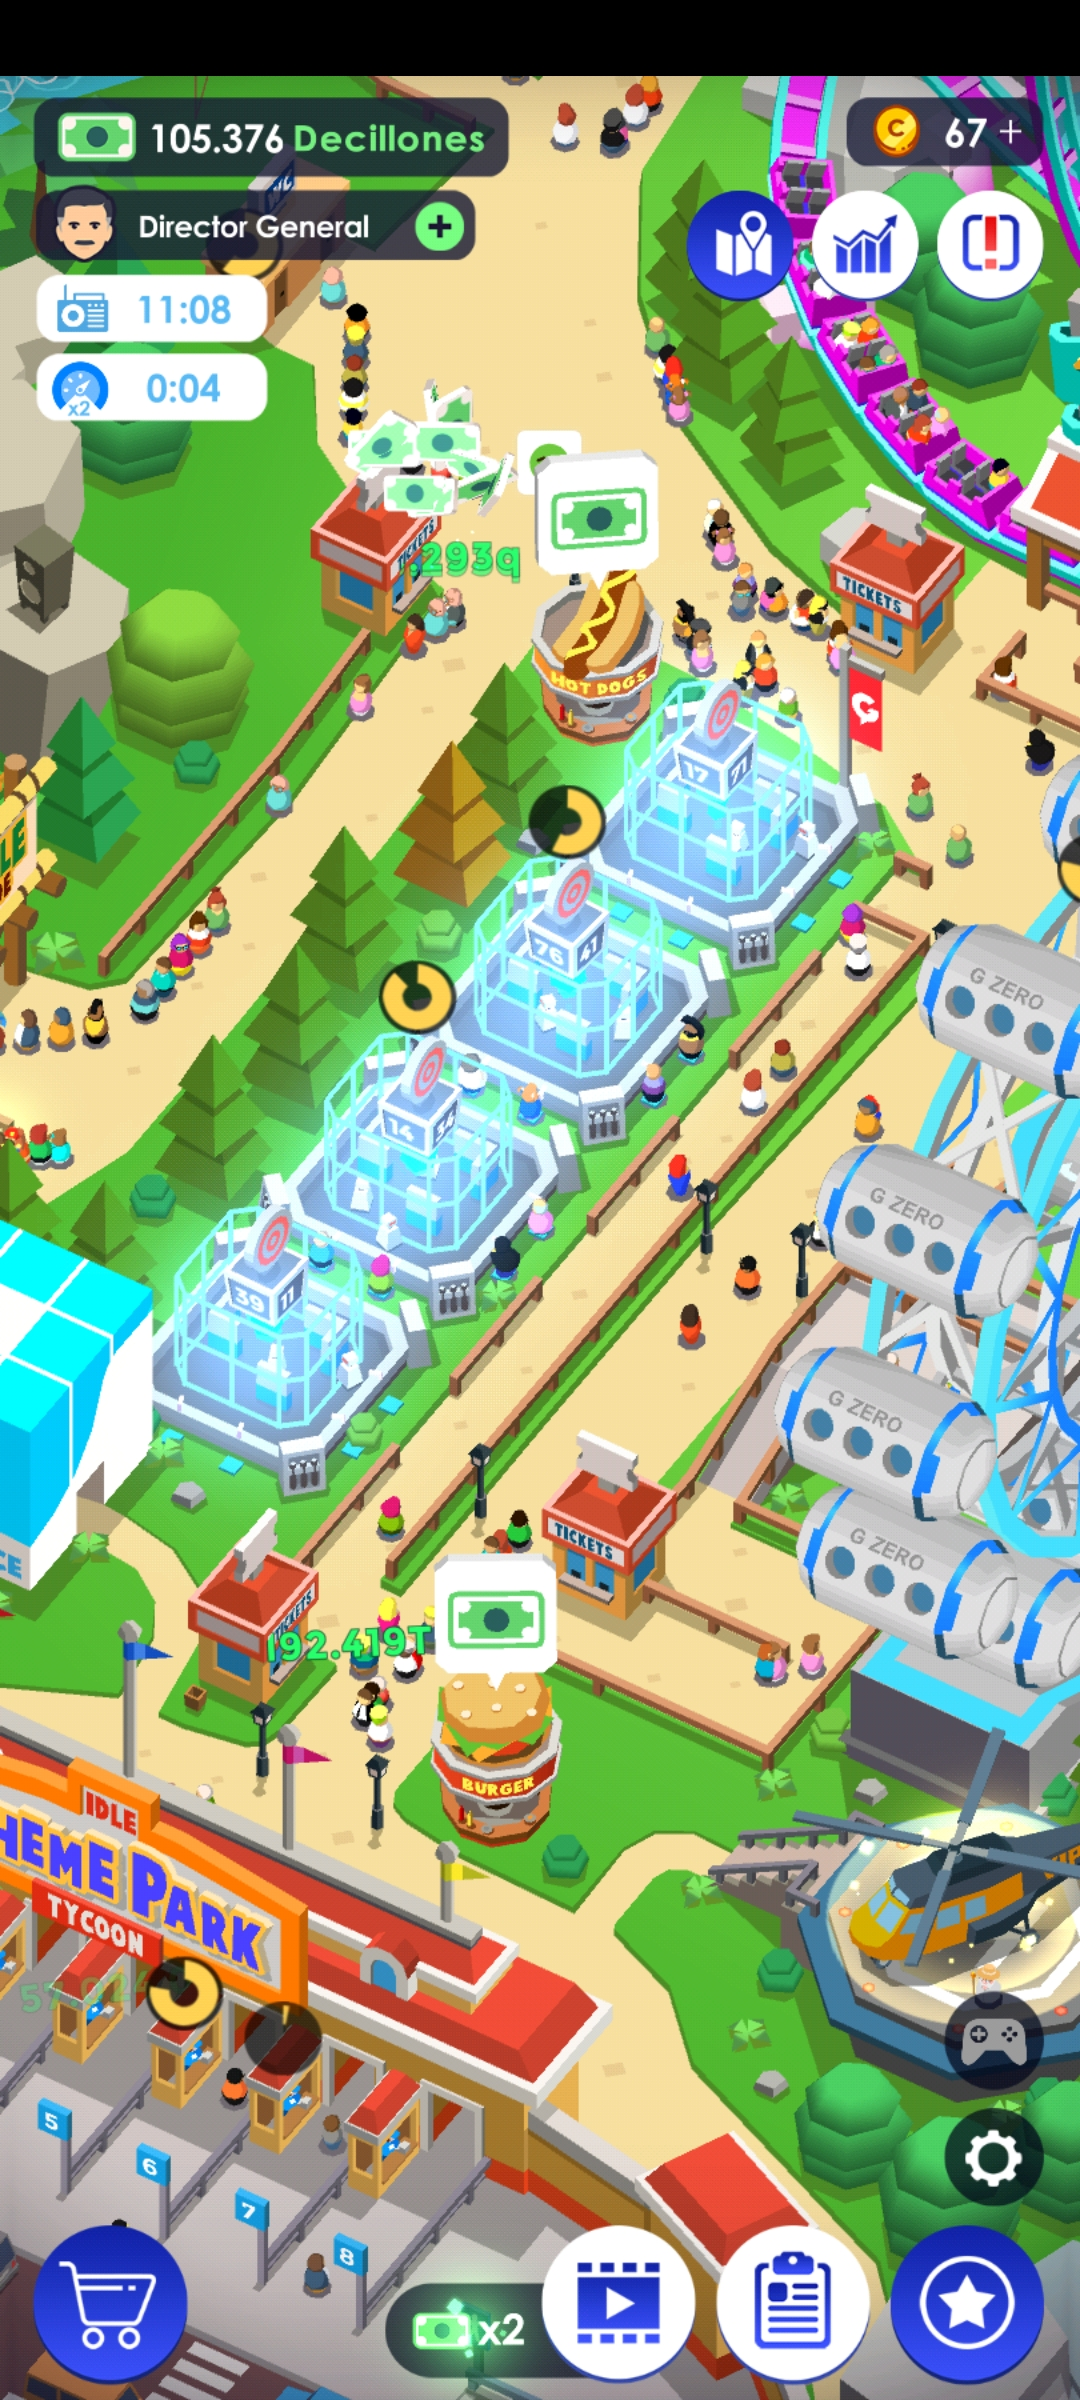 Idle Theme Park Tycoon - Recreation Game Mod apk download